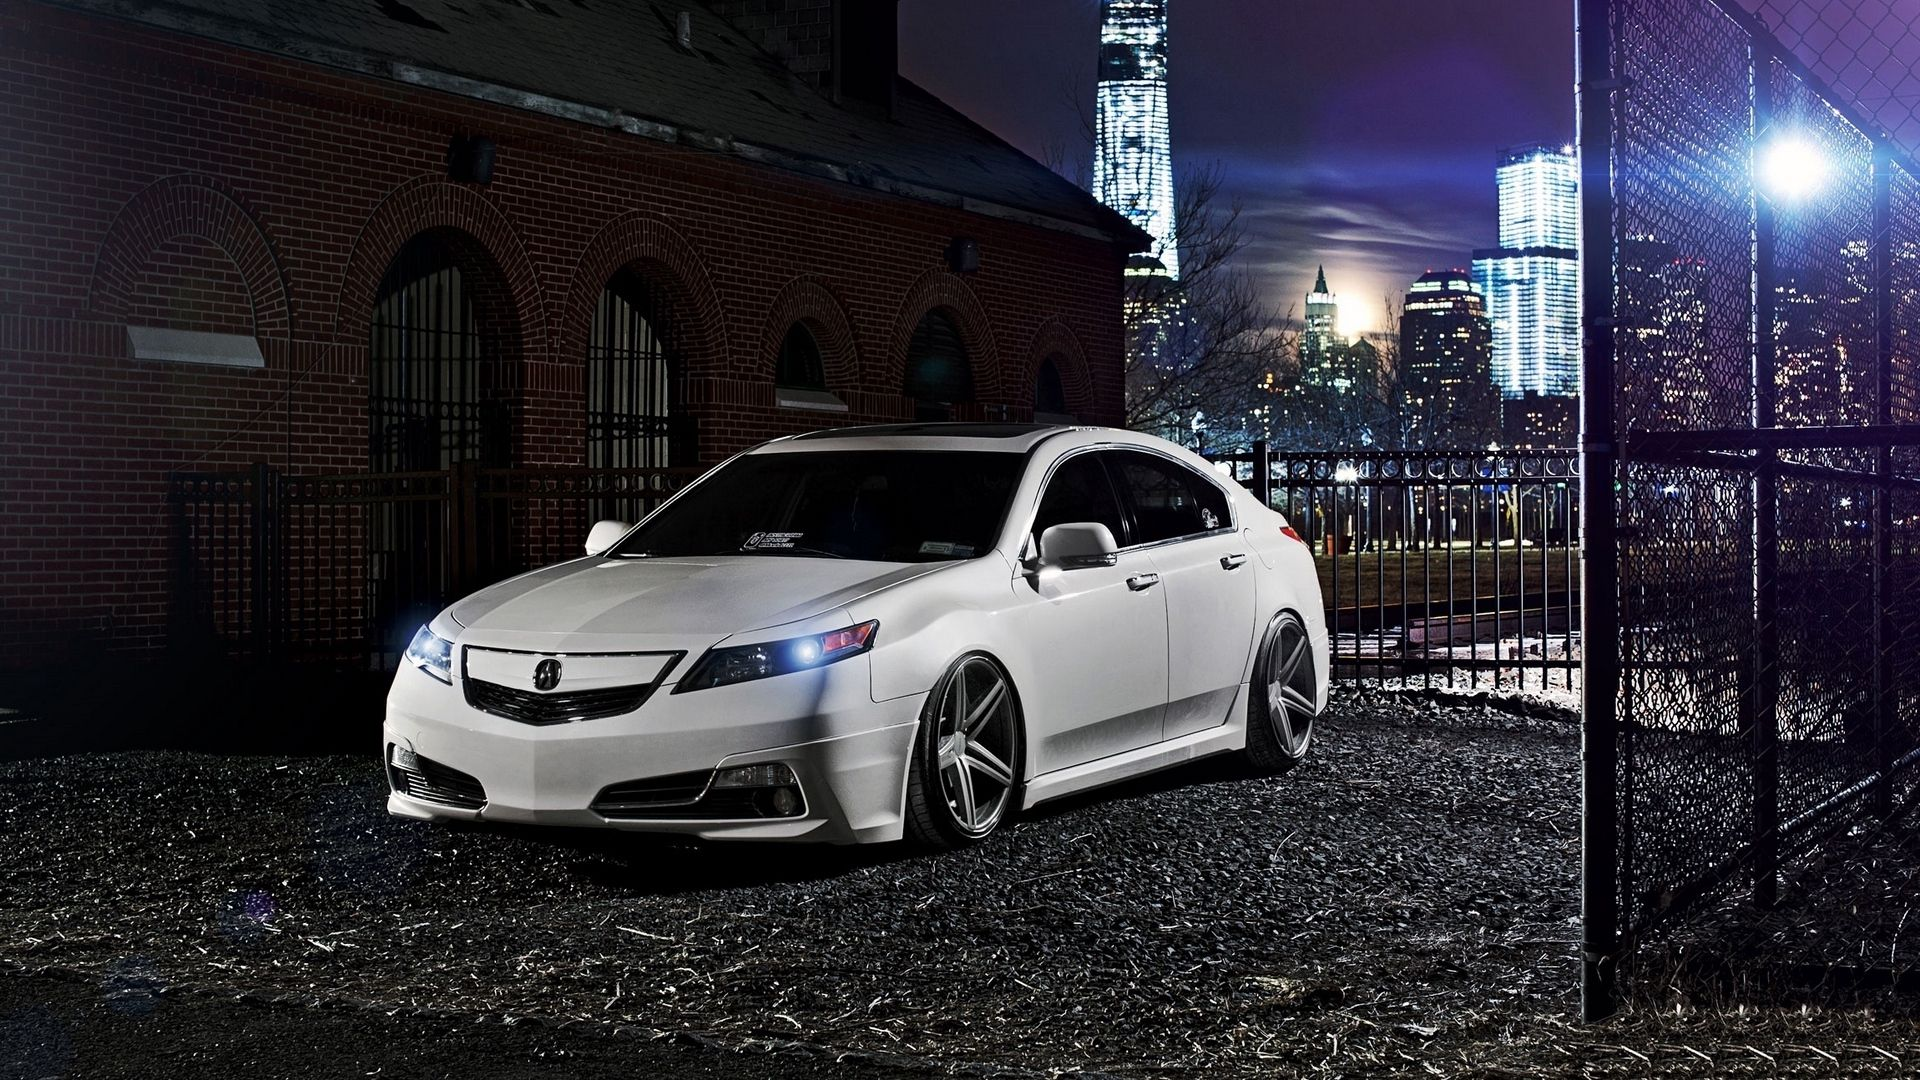 Honda Accord picture free download